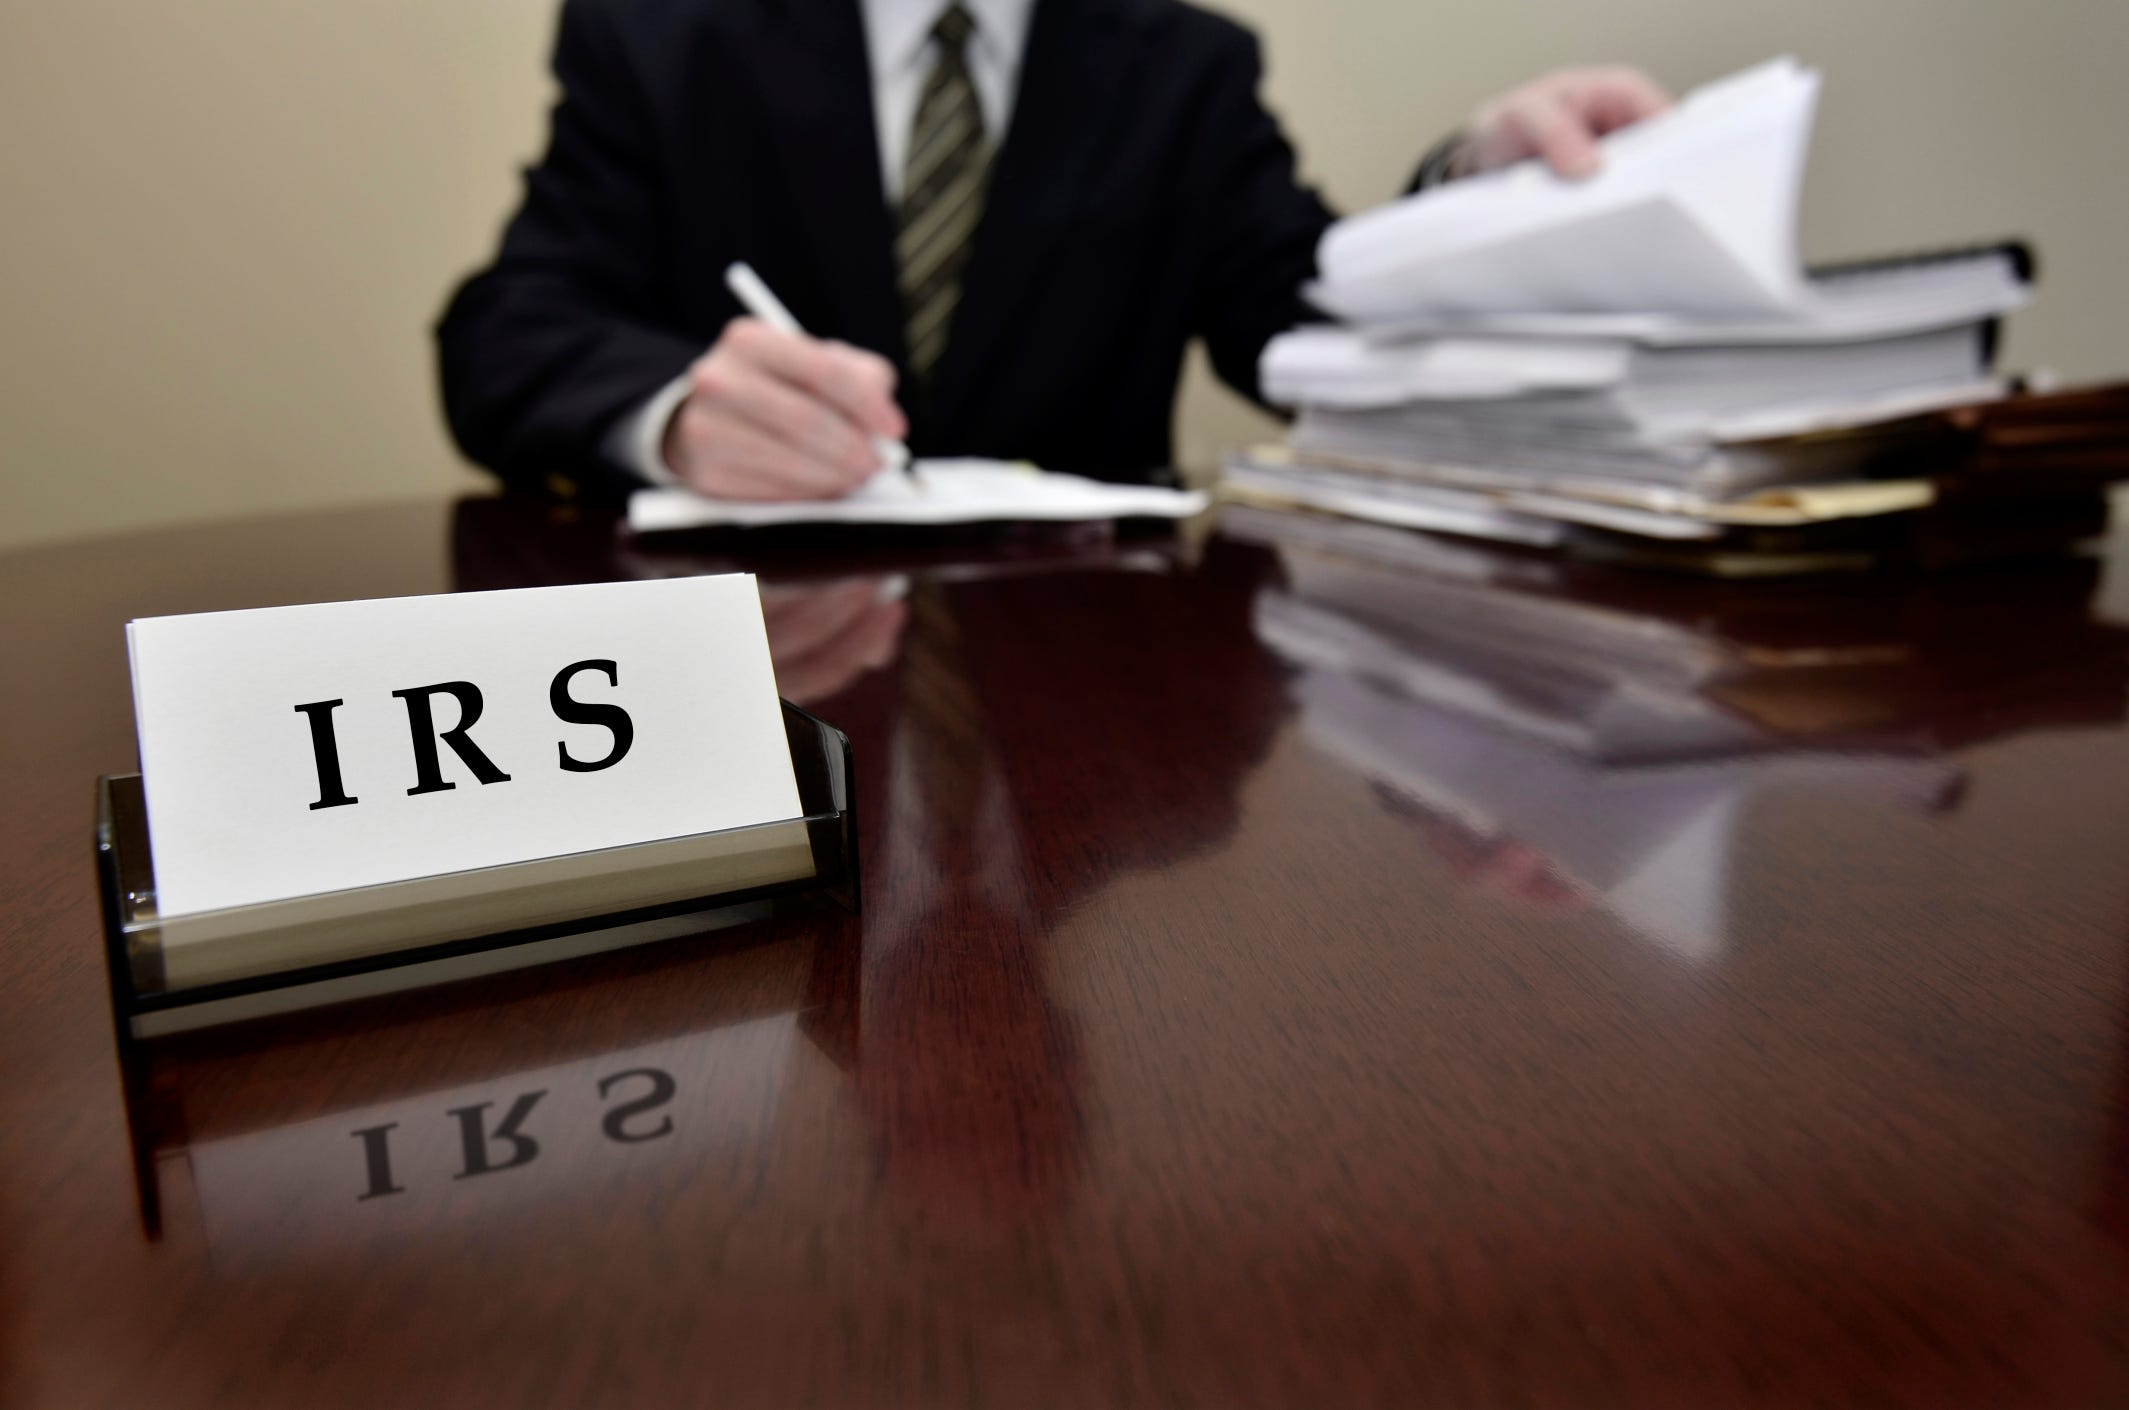 7 tax tips to avoid an IRS audit